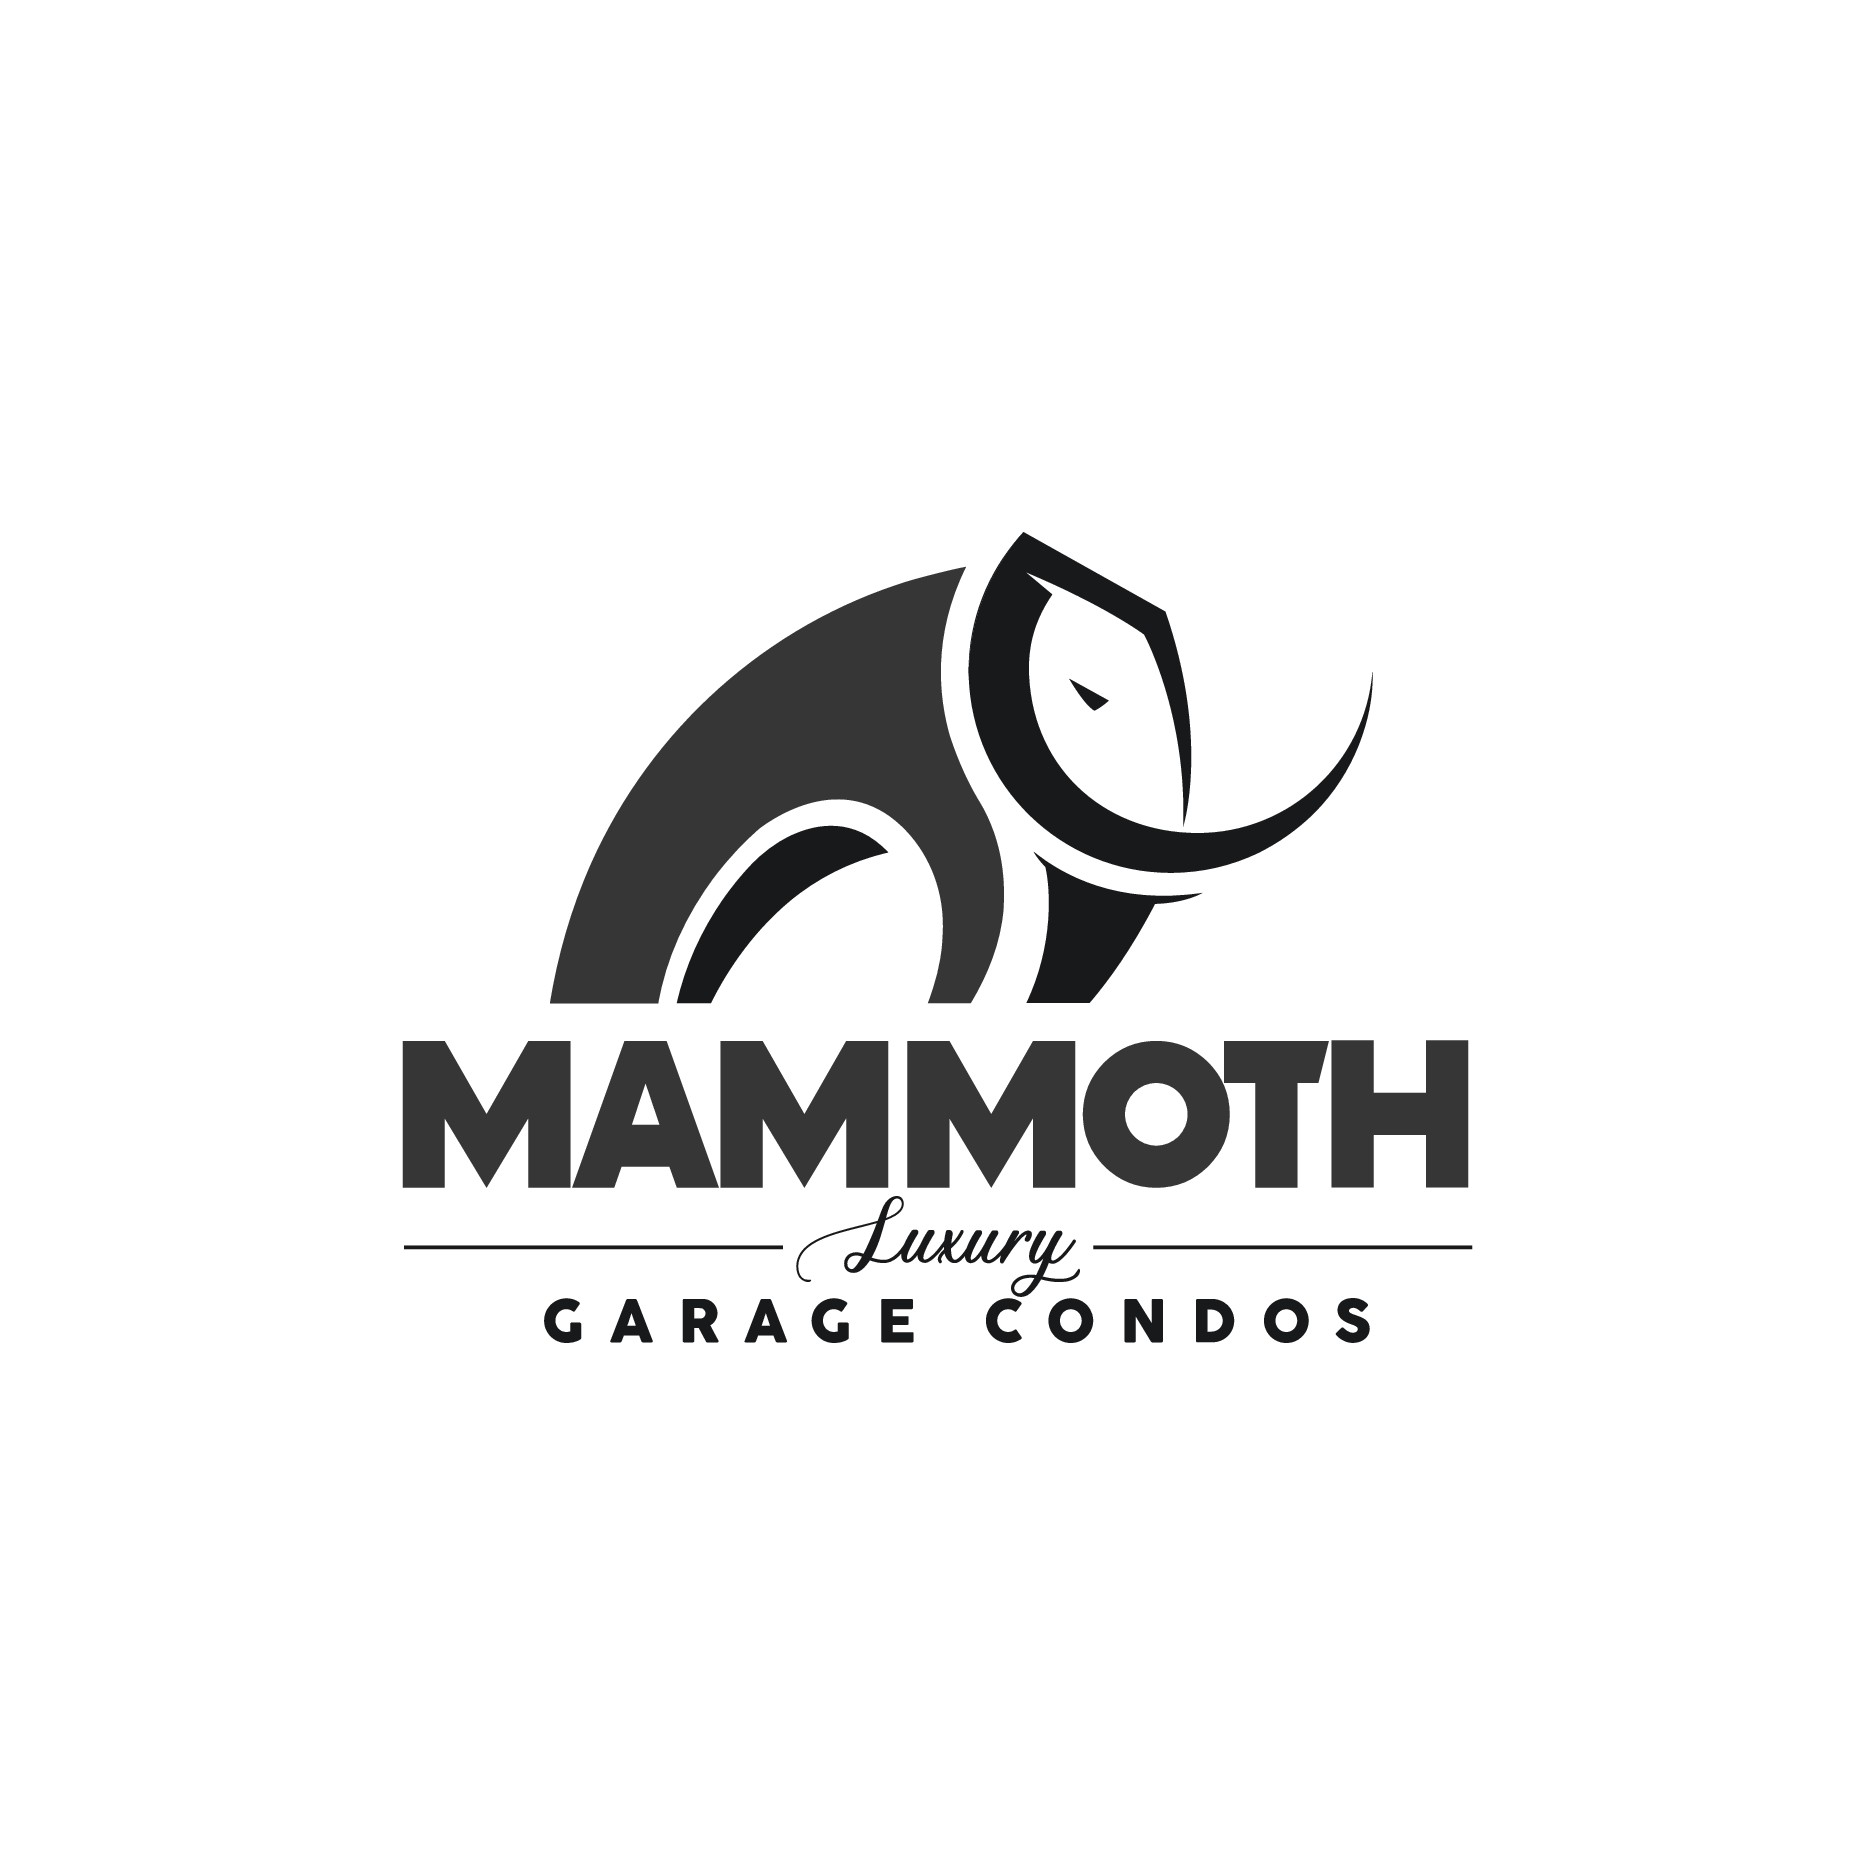 A logo for large storage units for purchase to store luxury cars, boats, RV's, etc.